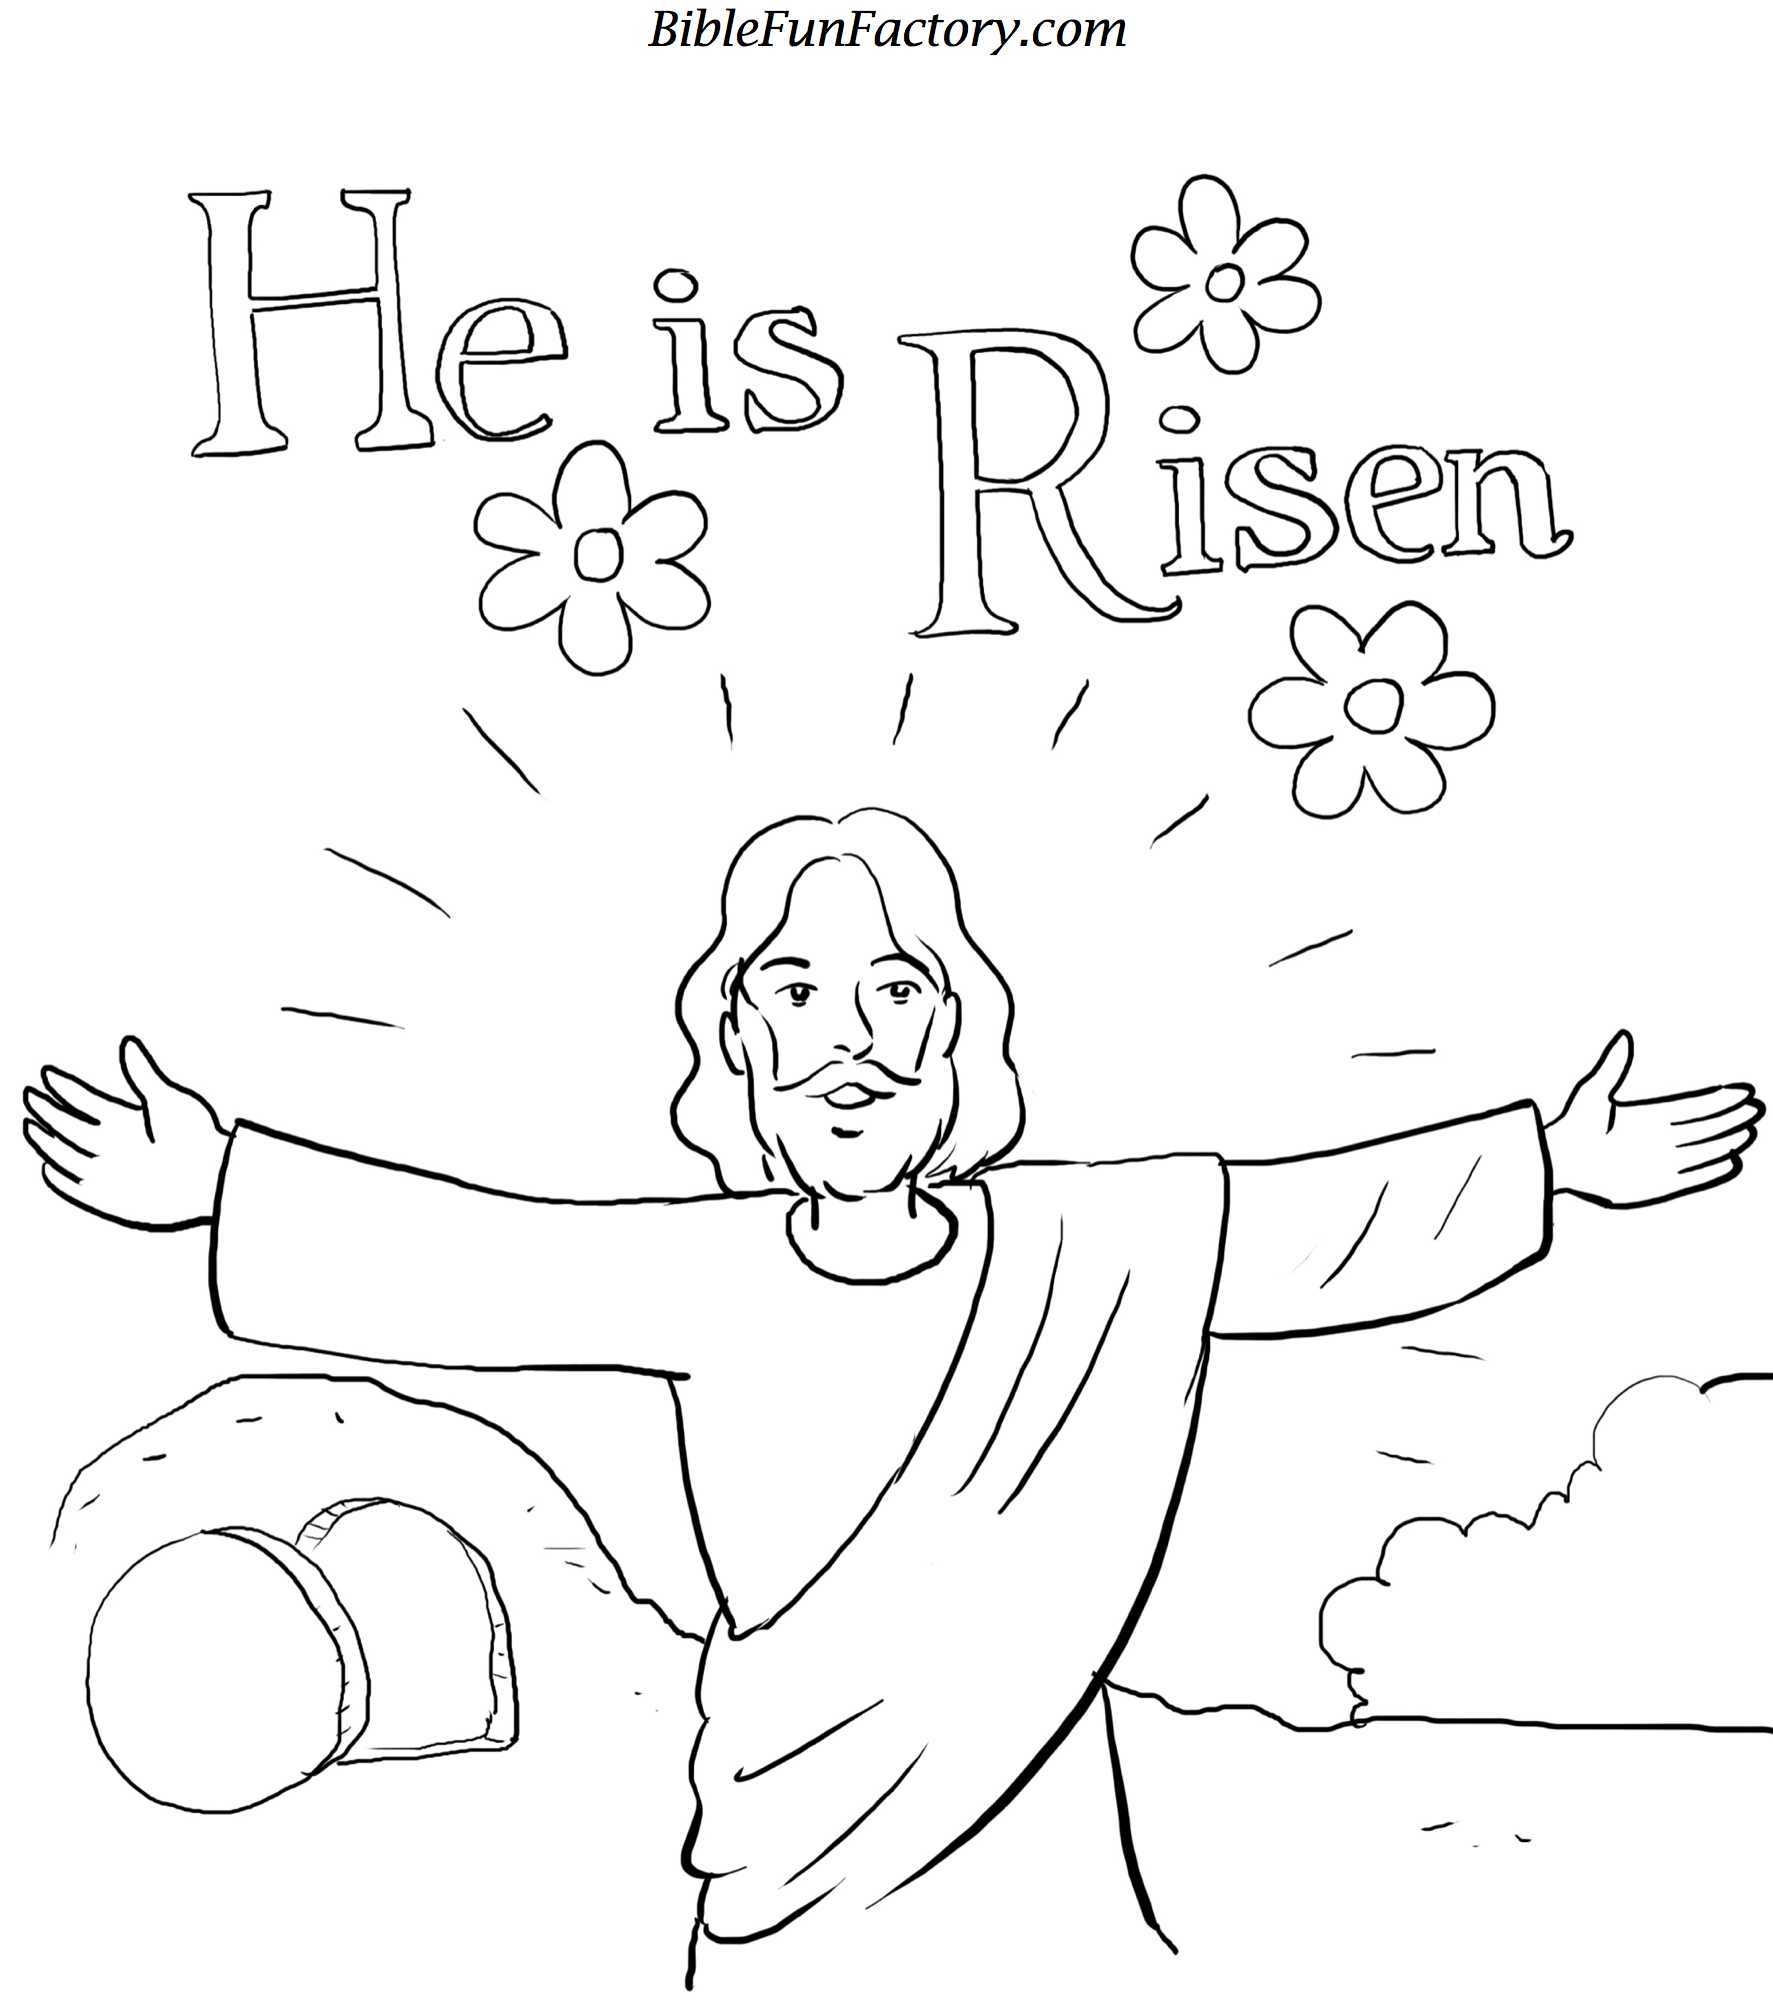 free printable easter coloring pages 8 free printable easter coloring pages your kids will love page 7 of 8 pages free coloring printable easter